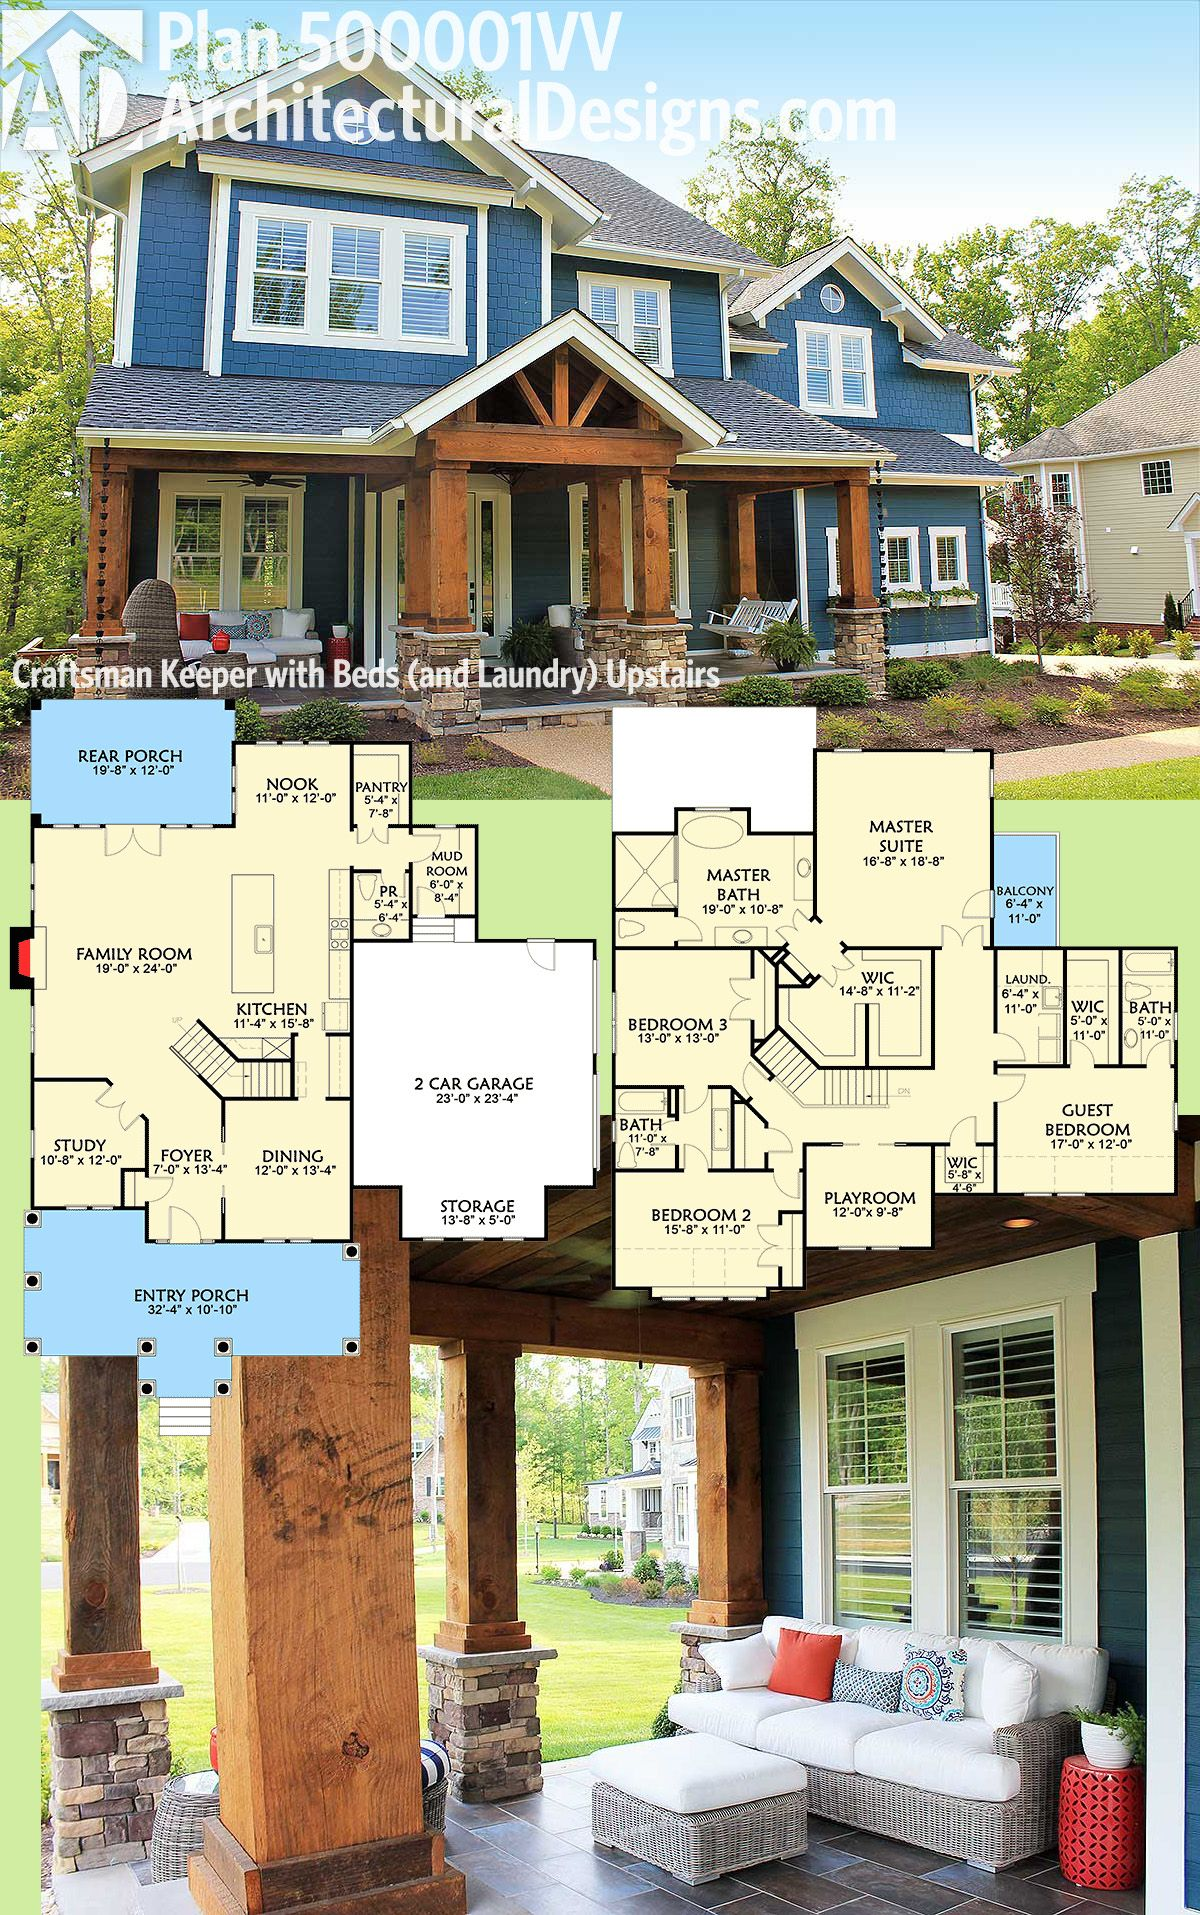 Plan 500001VV Craftsman Keeper with Beds and Laundry Upstairs